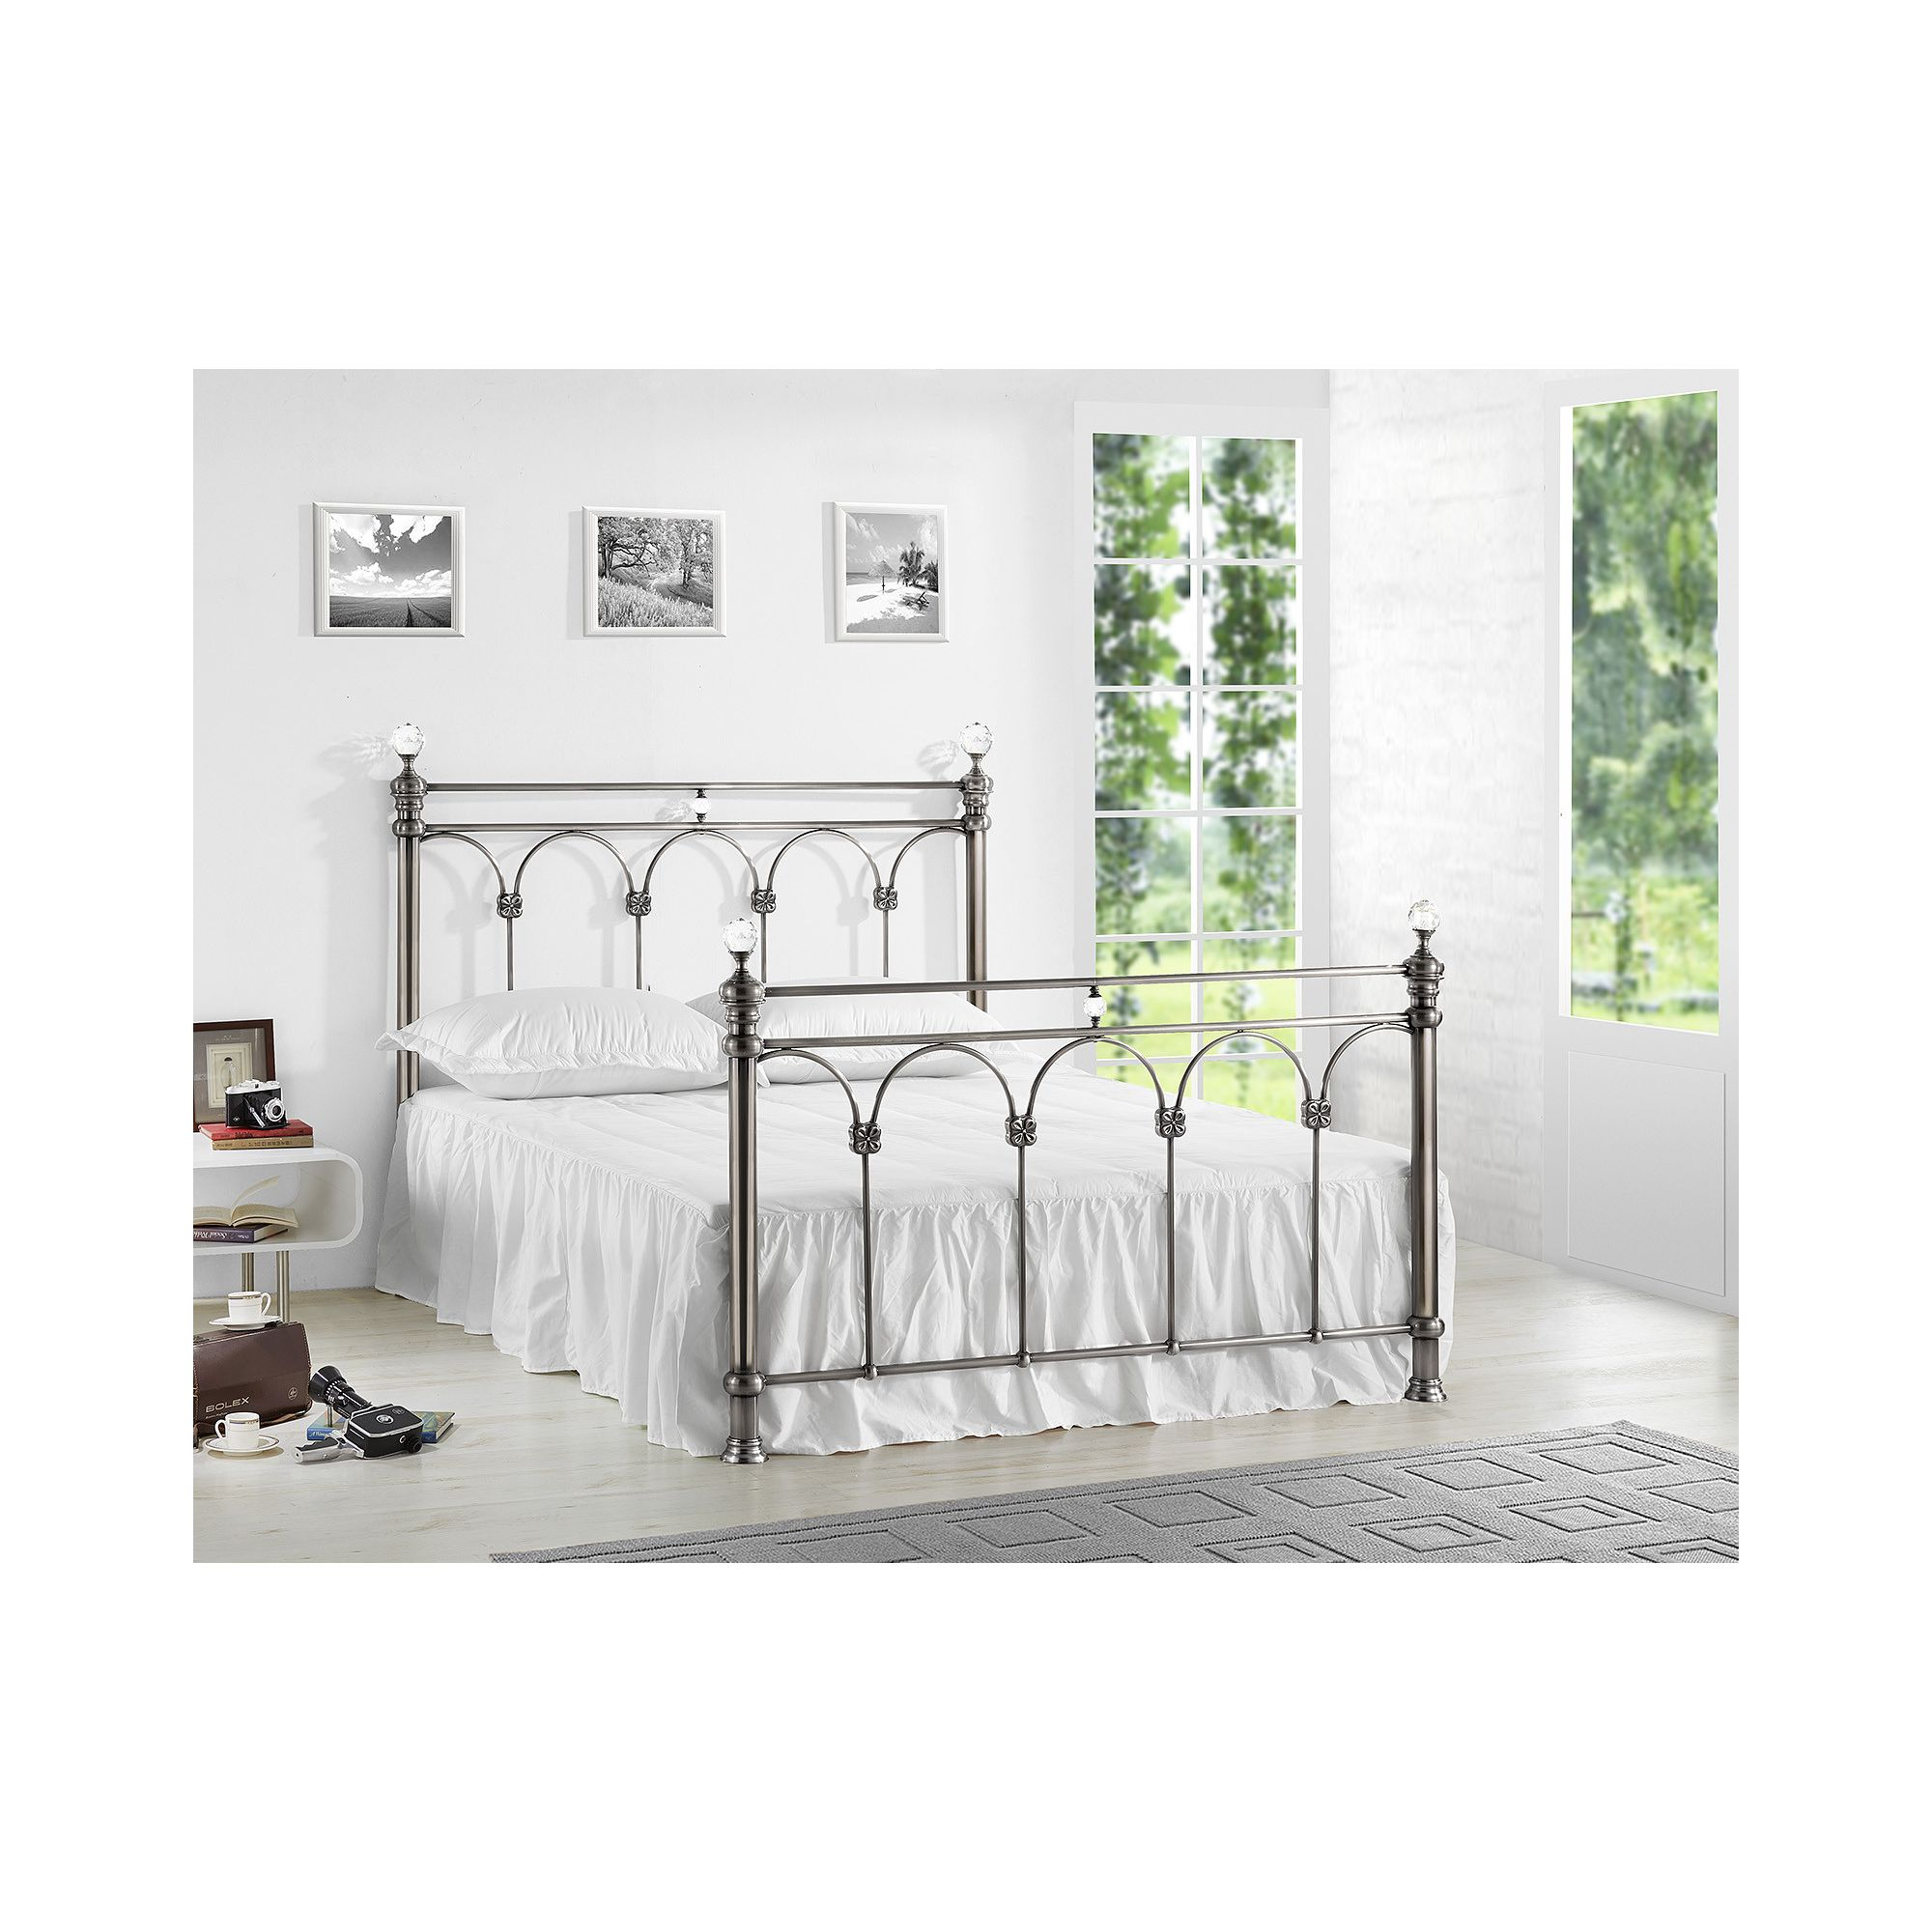 Birlea Shangai Bed Frame - King - Nickel at Tesco Direct